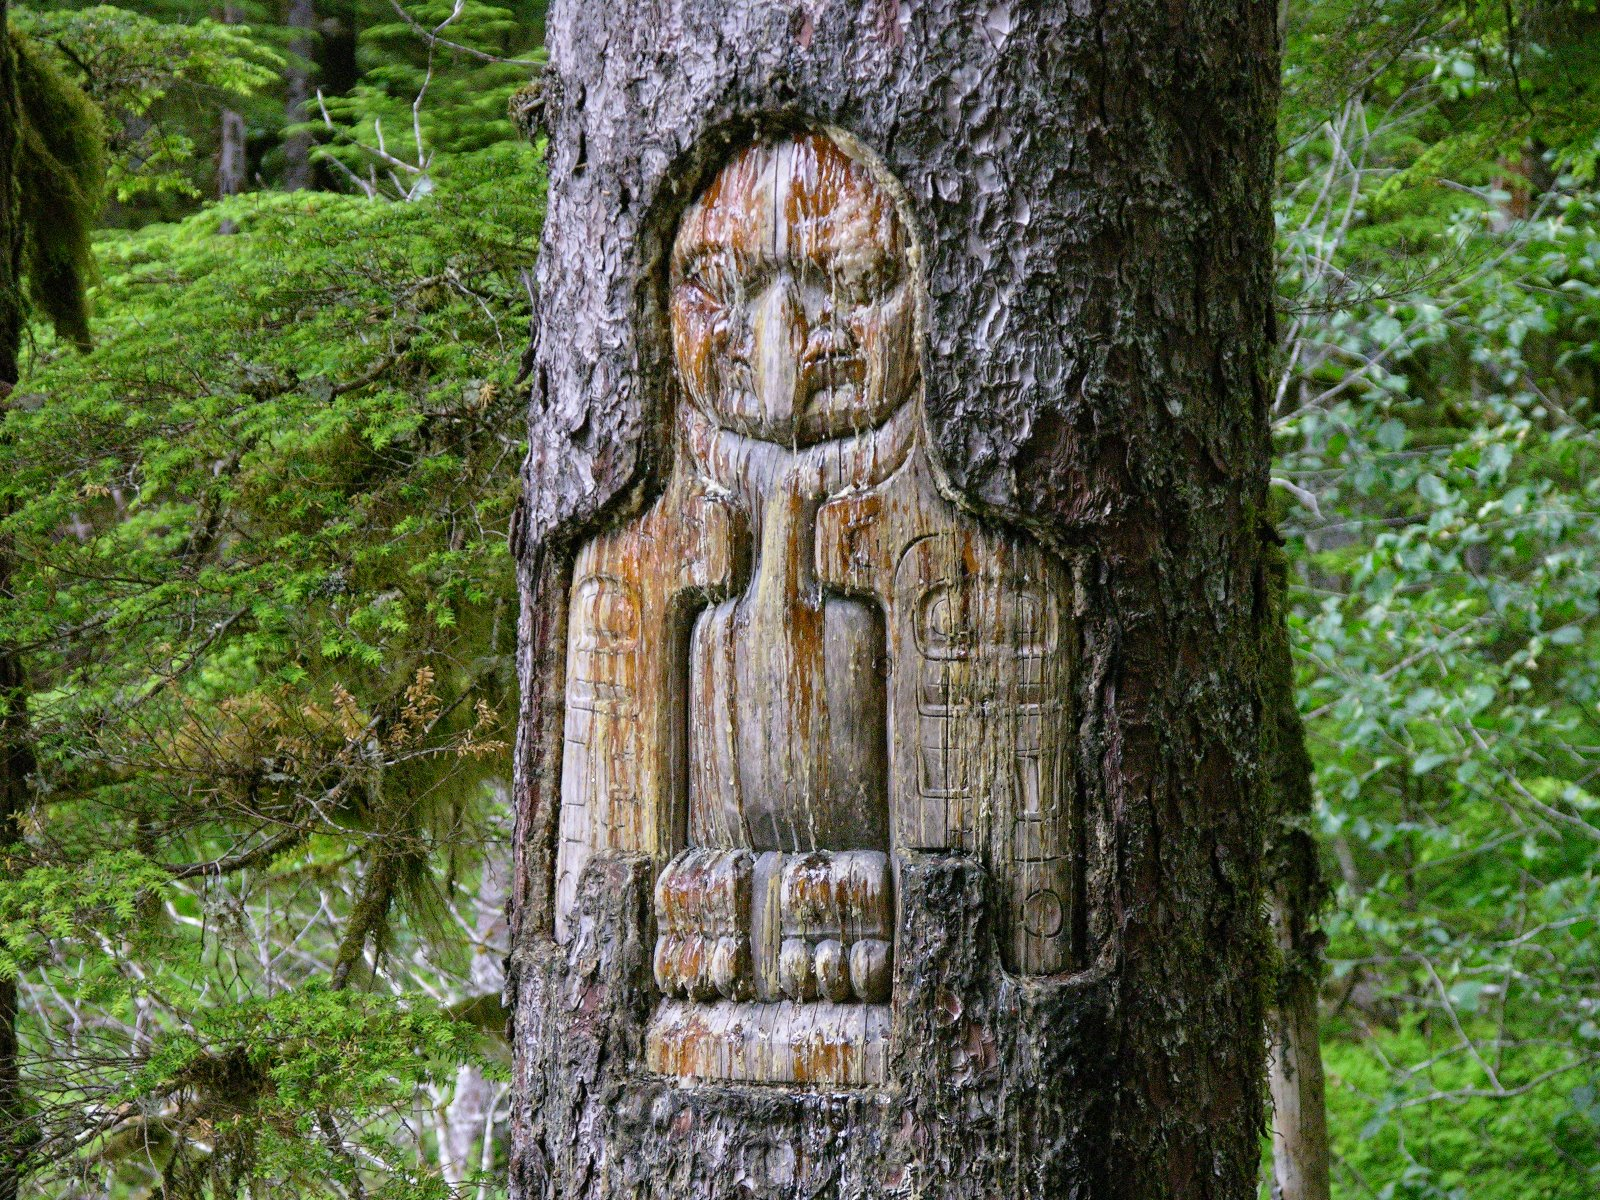 Tinglit tree carving in Bartlett Cove.